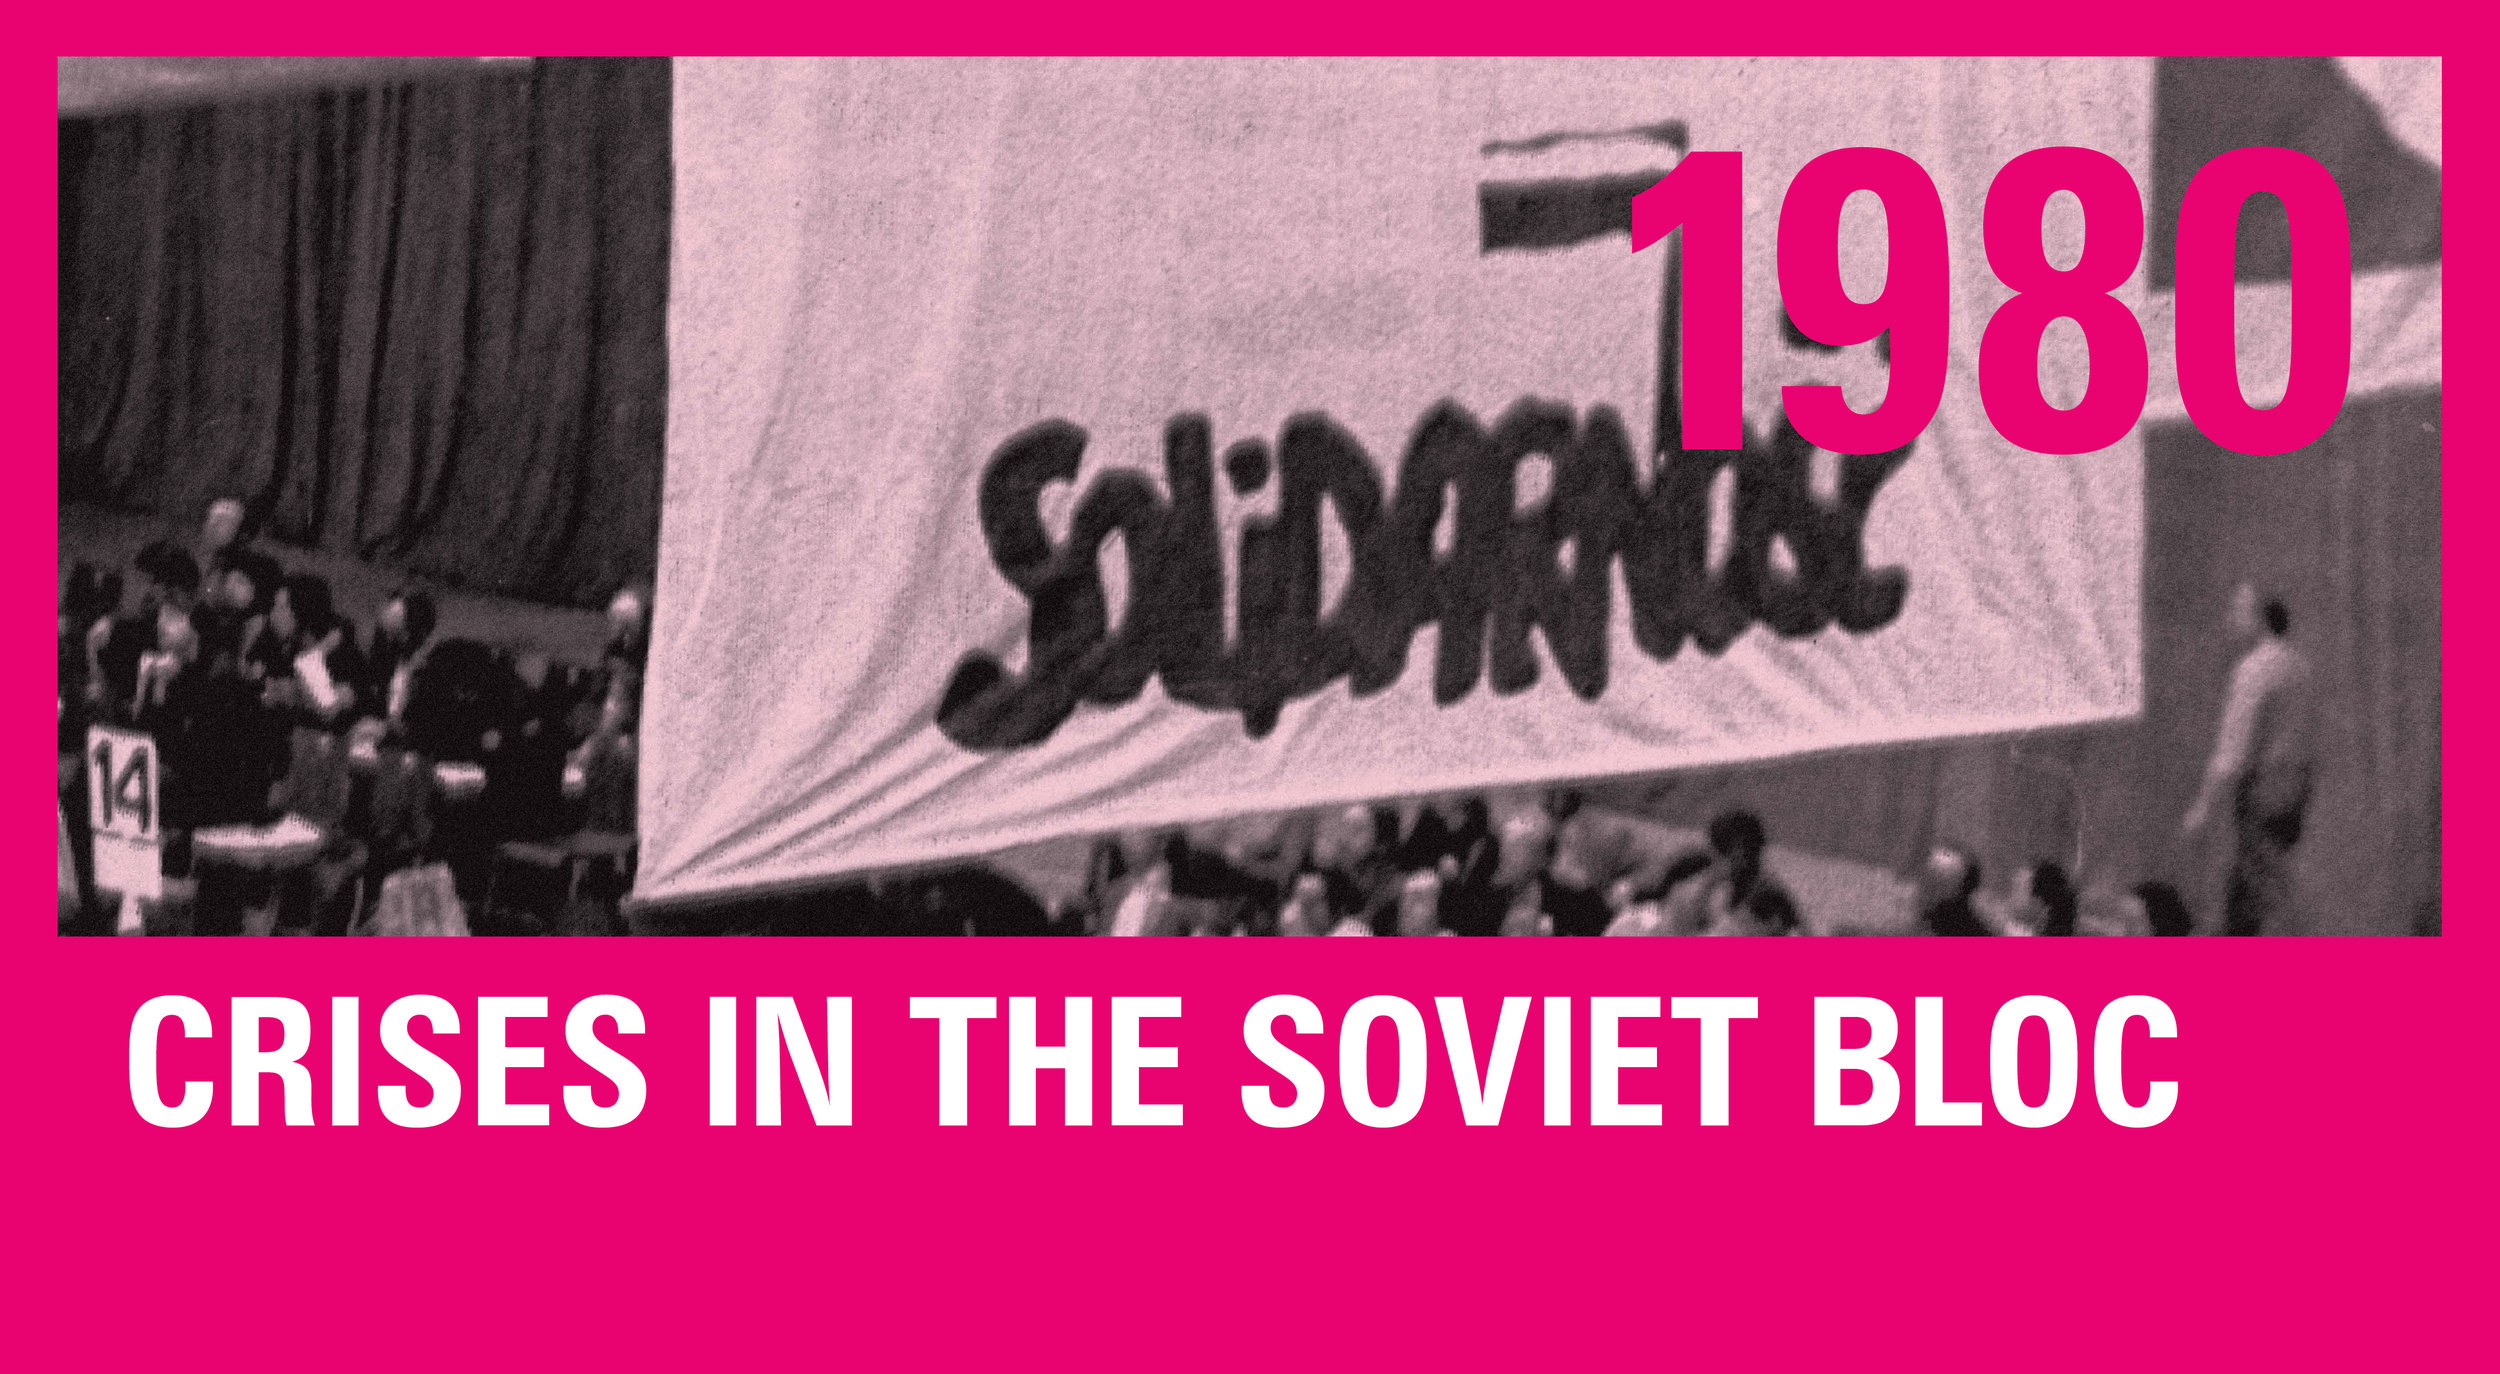 The Solidarity Labor Union meets for its first Congress in Gdansk in 1980.